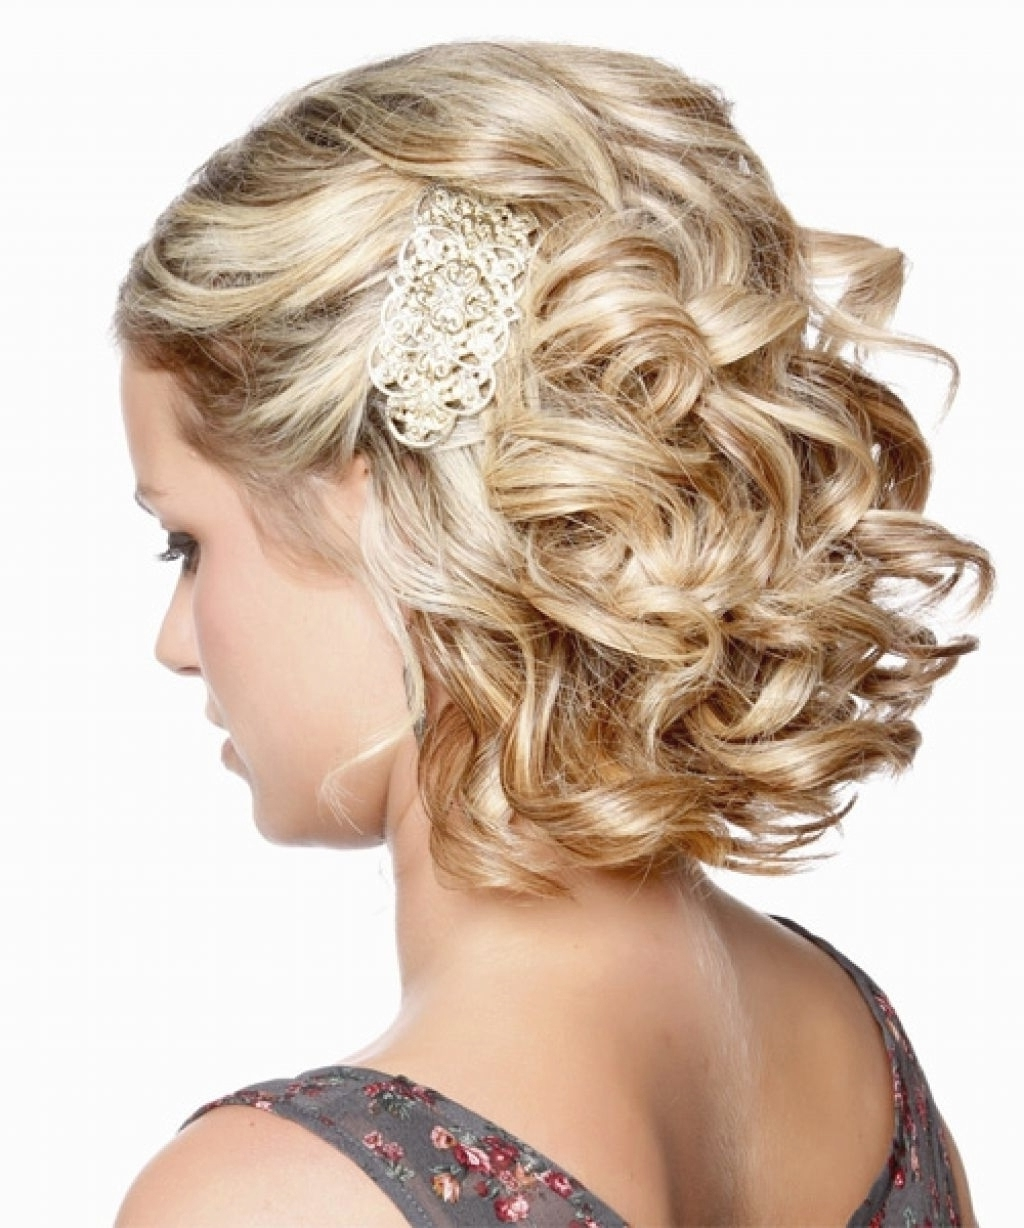 Unforgettable Weddingir Medium Length Bridalirstyles Ideas Updos For Throughout Well Known Wedding Hairstyles For Medium Length Curly Hair (View 2 of 15)